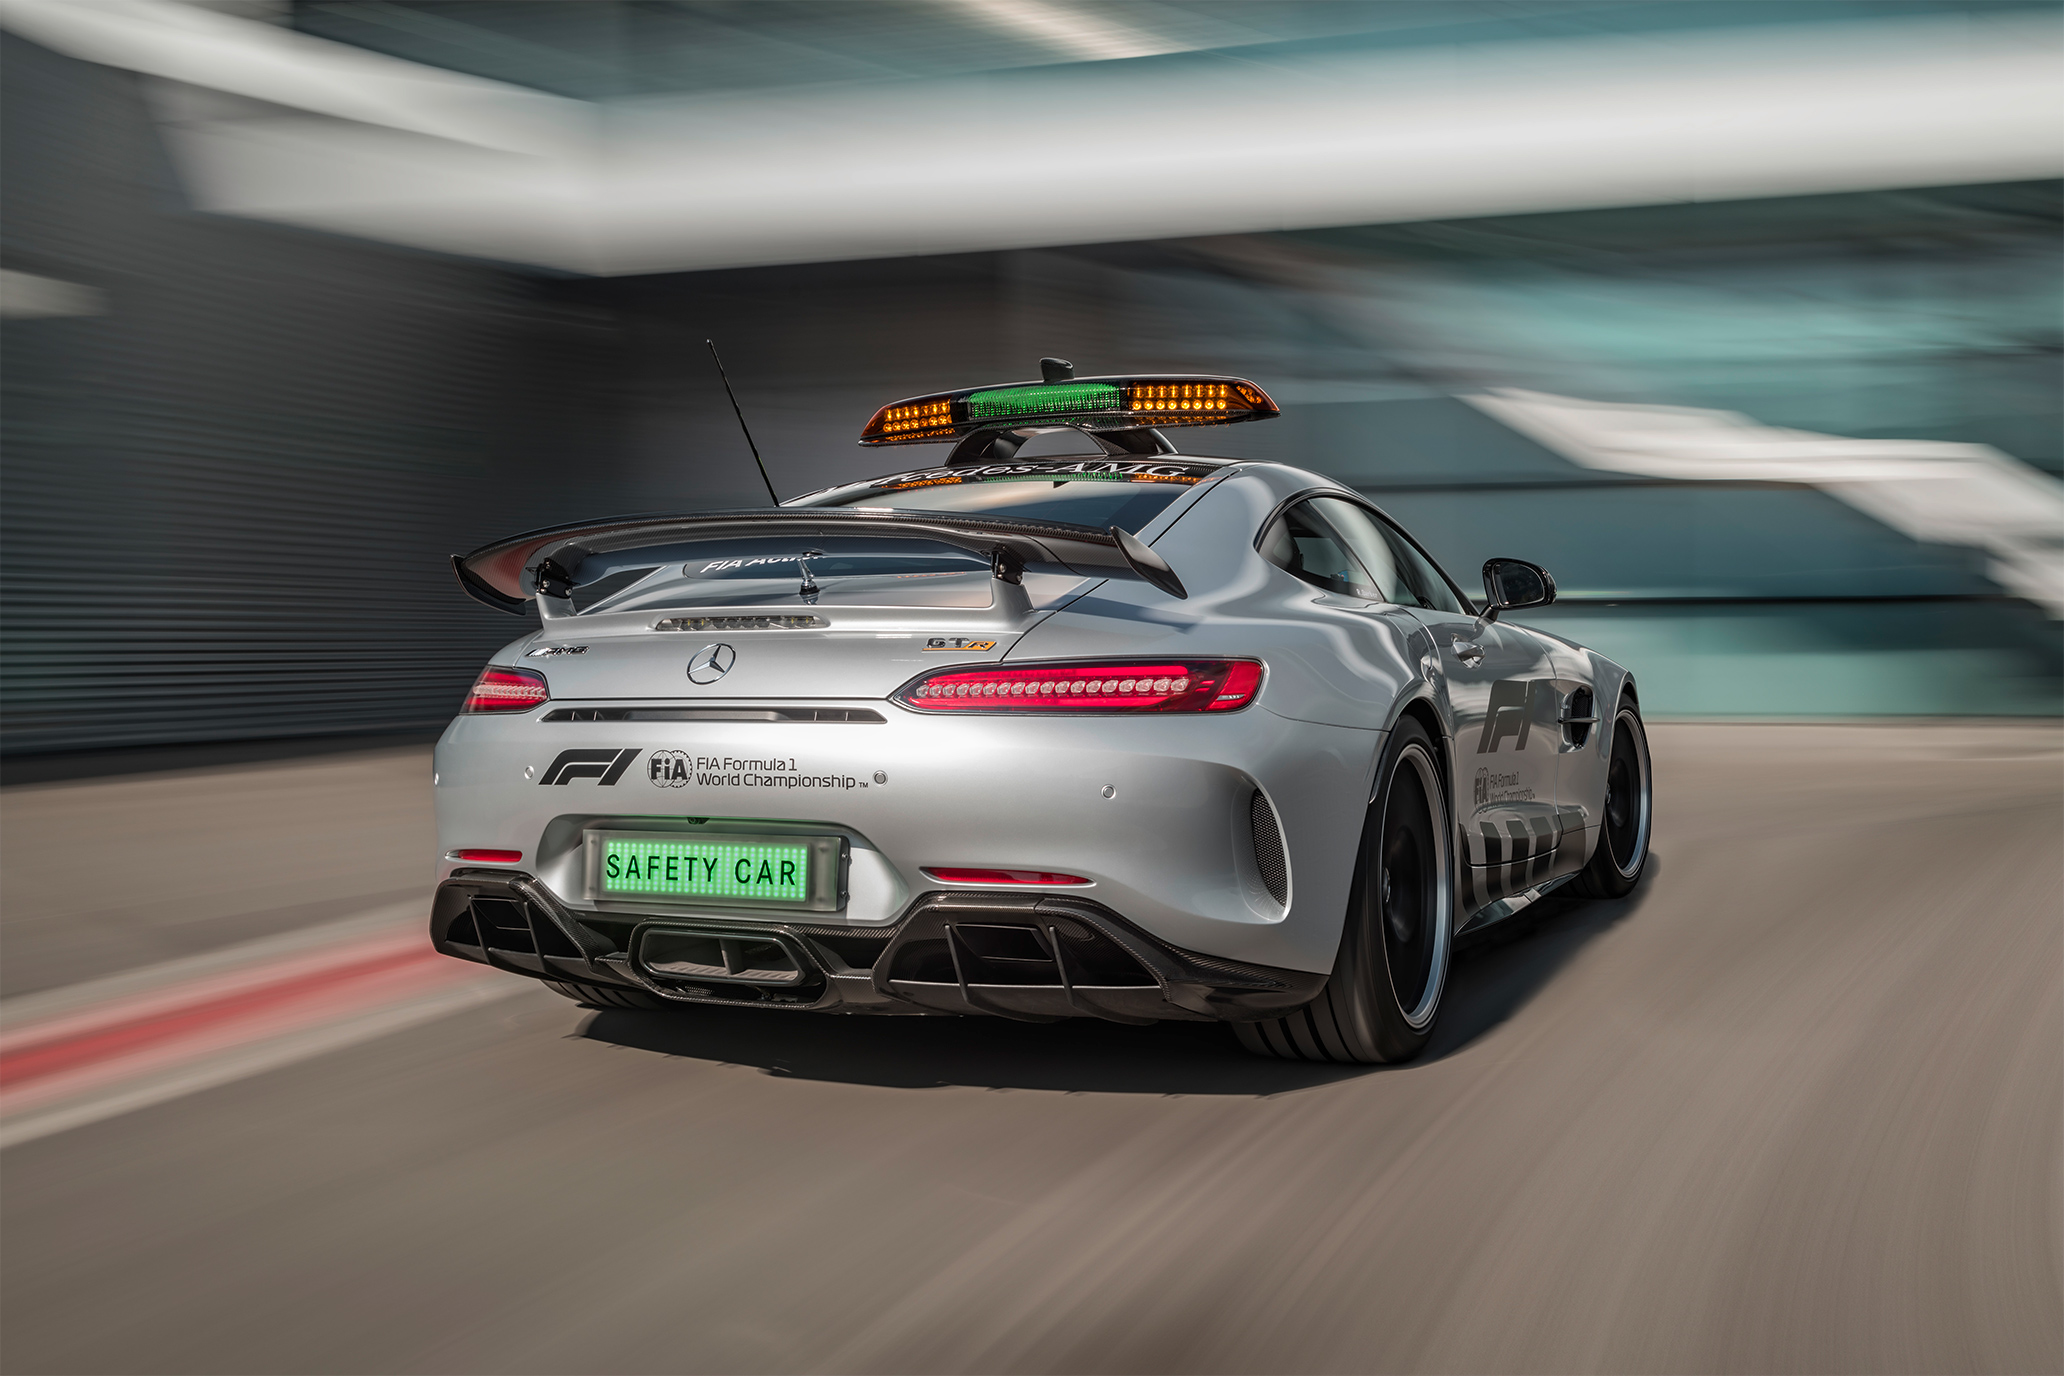 TrackWorthy - 2018 Mercedes-AMG GT R Formula 1 Safety Car (4)